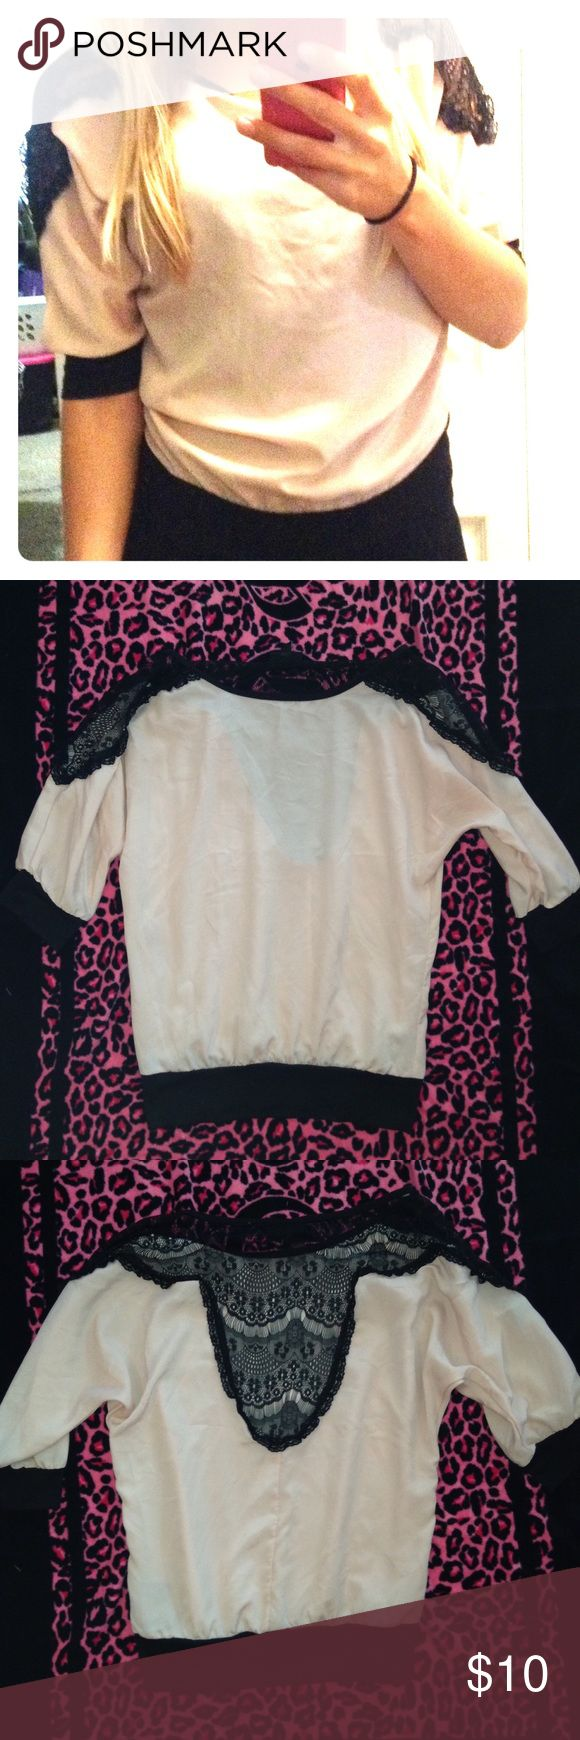 Pink lace top Pale pink top with black lace. Ships same or next day! Tops